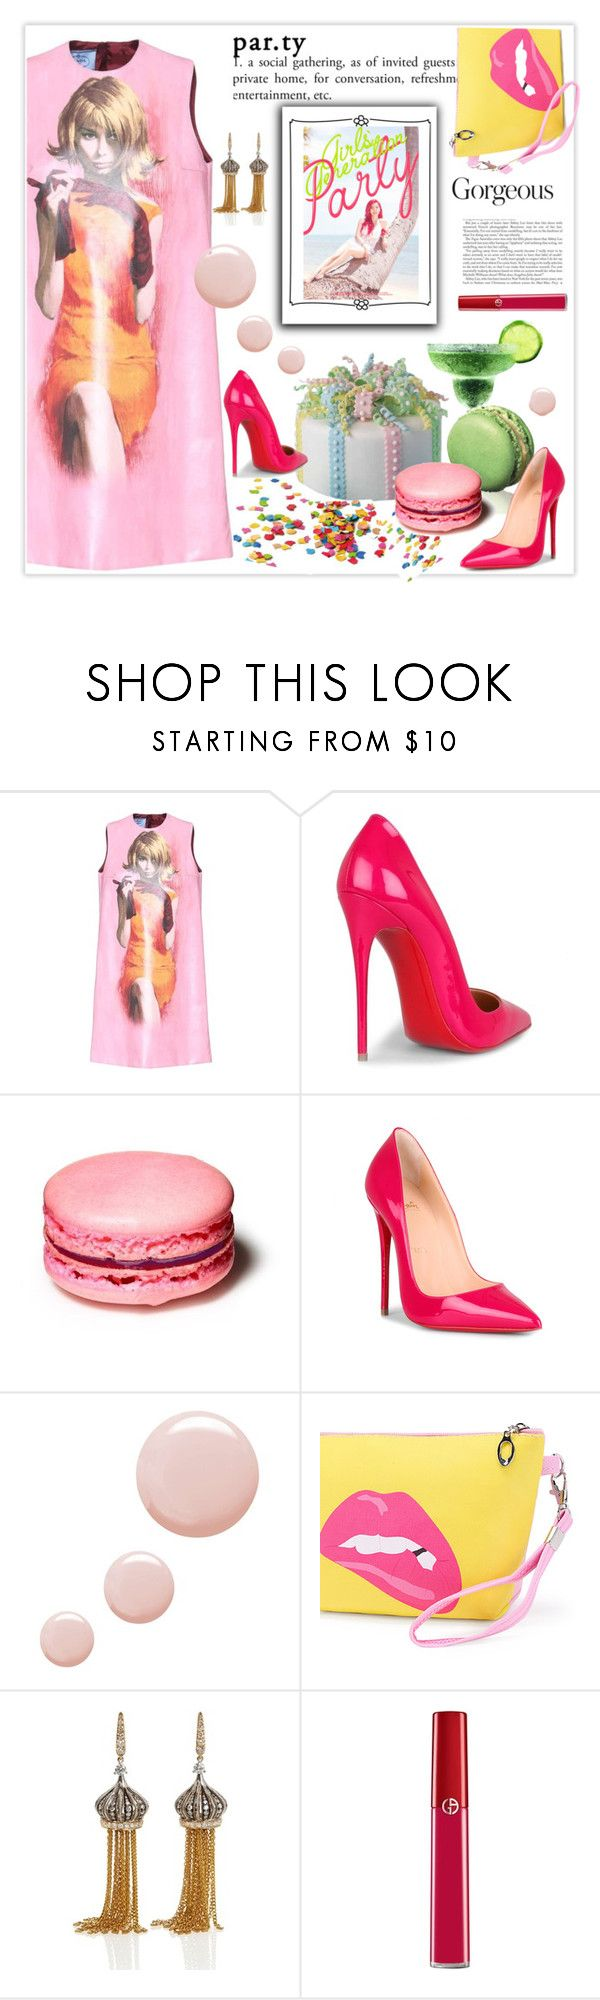 """Party"" by zemnaya ❤ liked on Polyvore featuring Prada, Christian Louboutin, Topshop, Annoushka, Armani Beauty, contest and party"